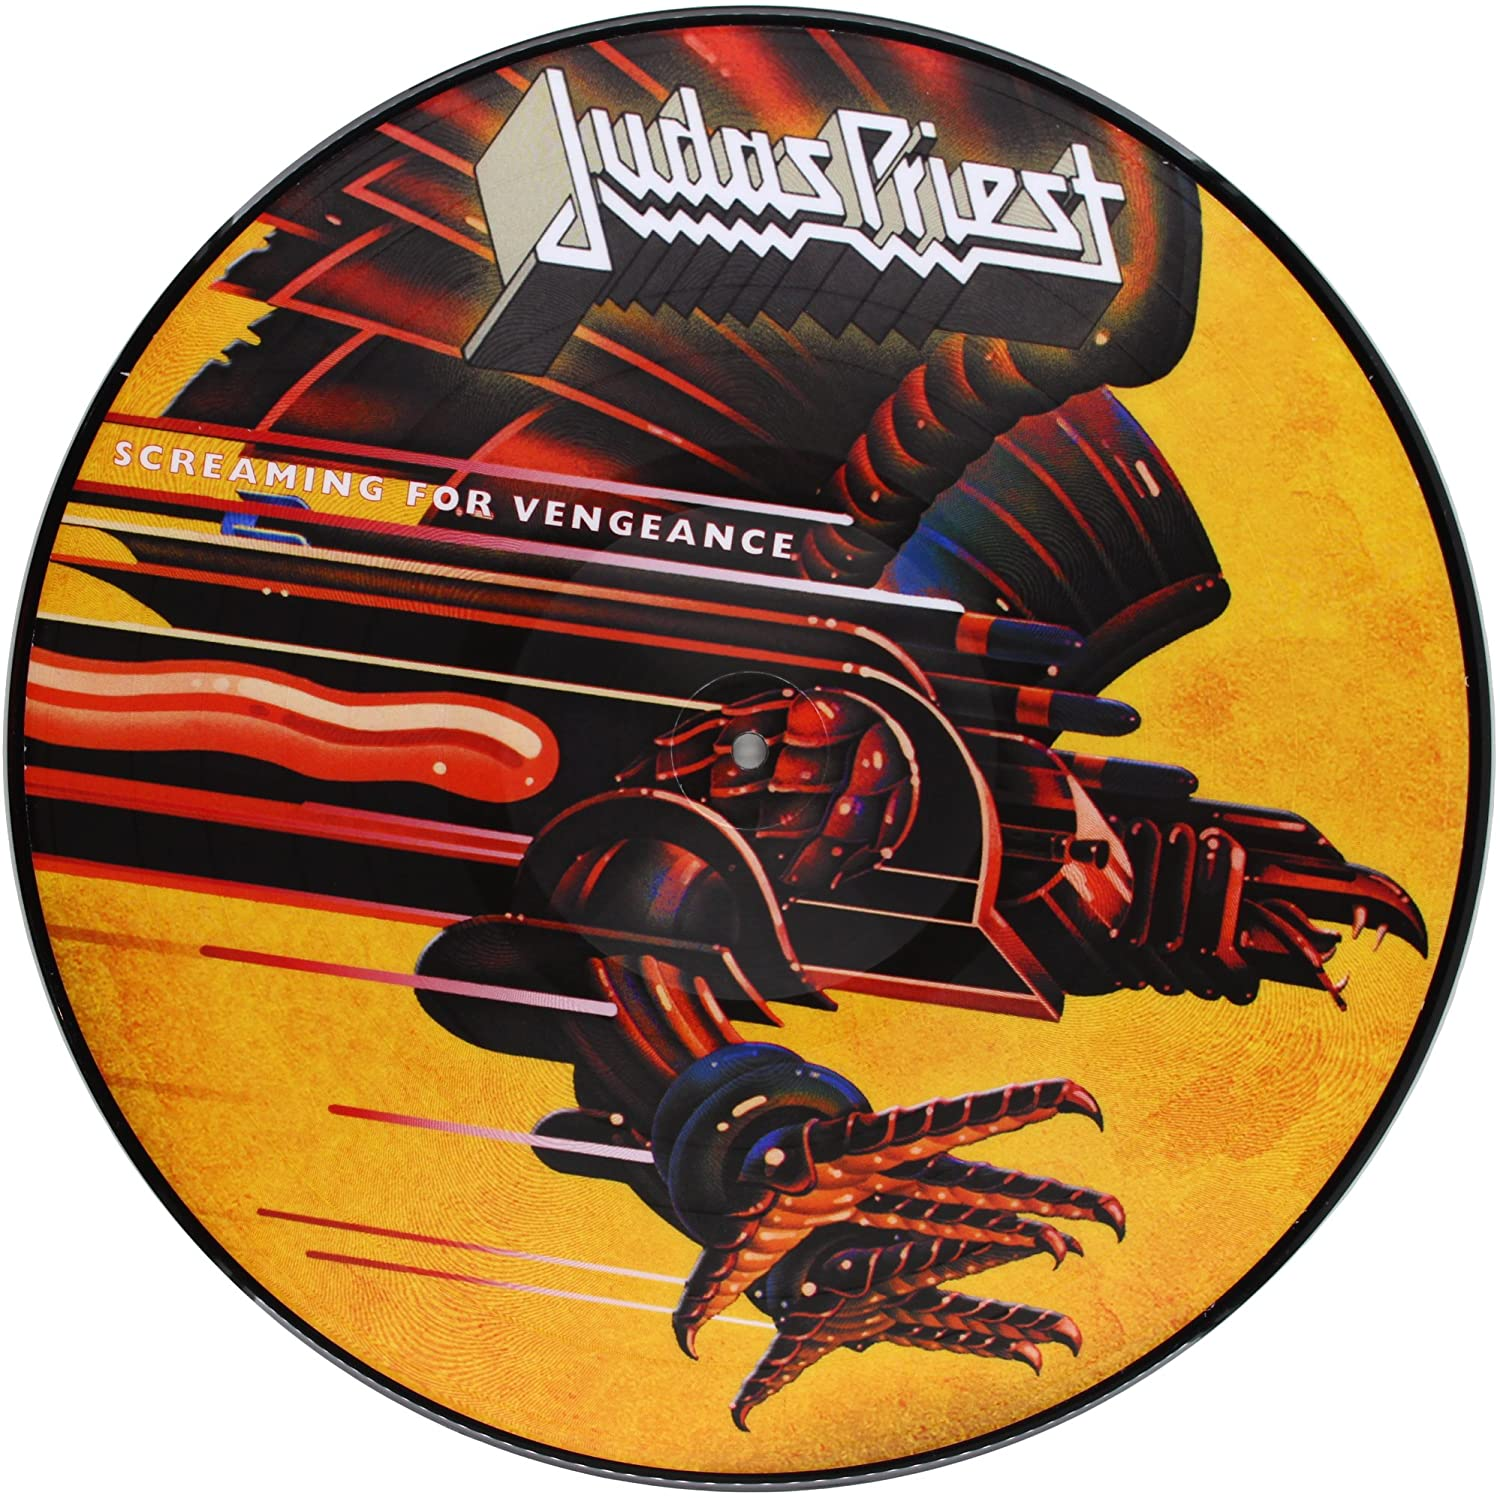 Screaming For Vengeance (Picture Disc) (LP)